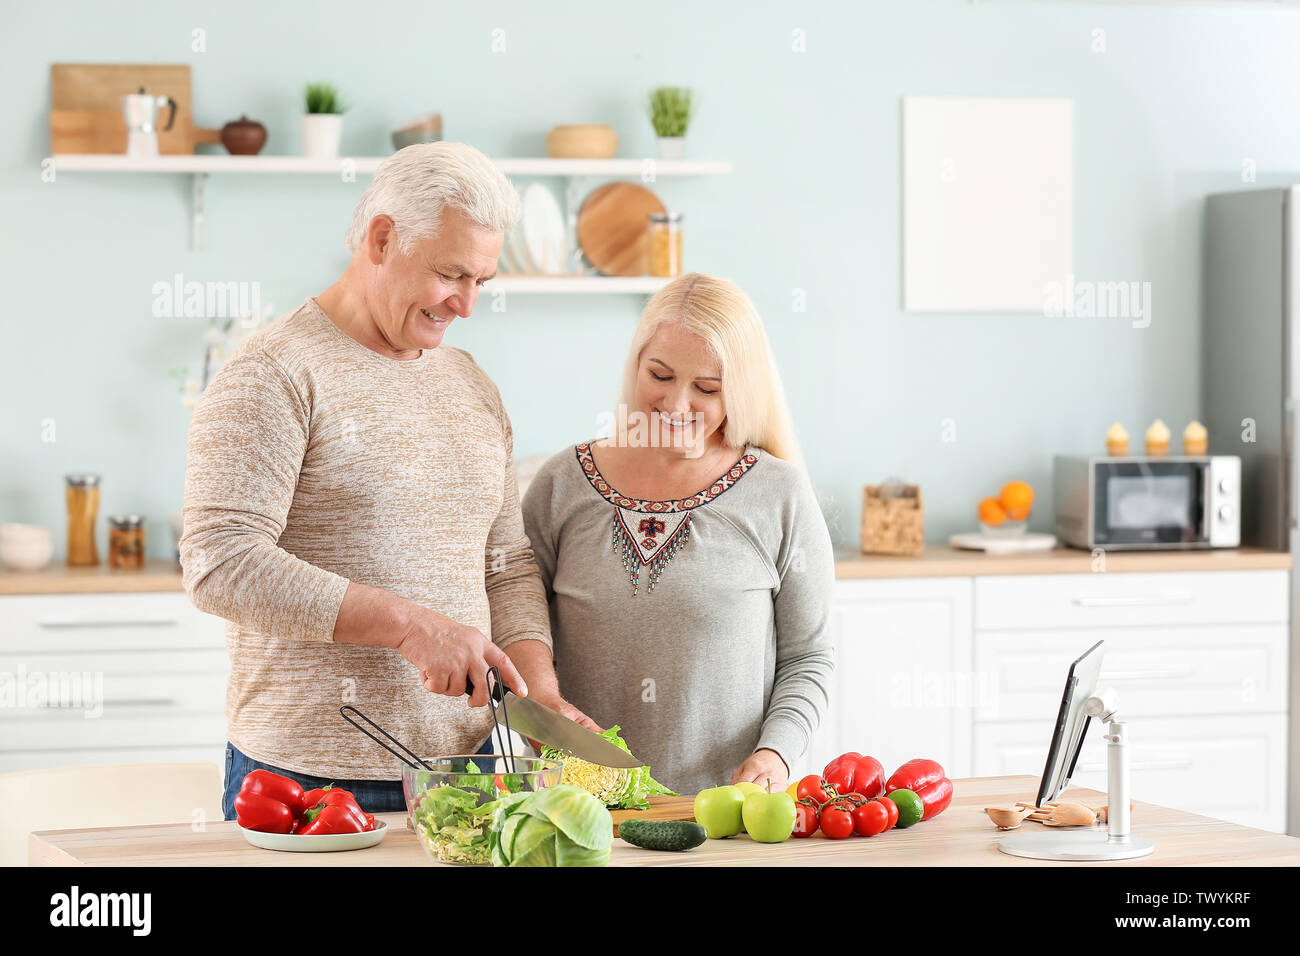 Portrait of happy mature couple cooking in kitchen - Stock Image